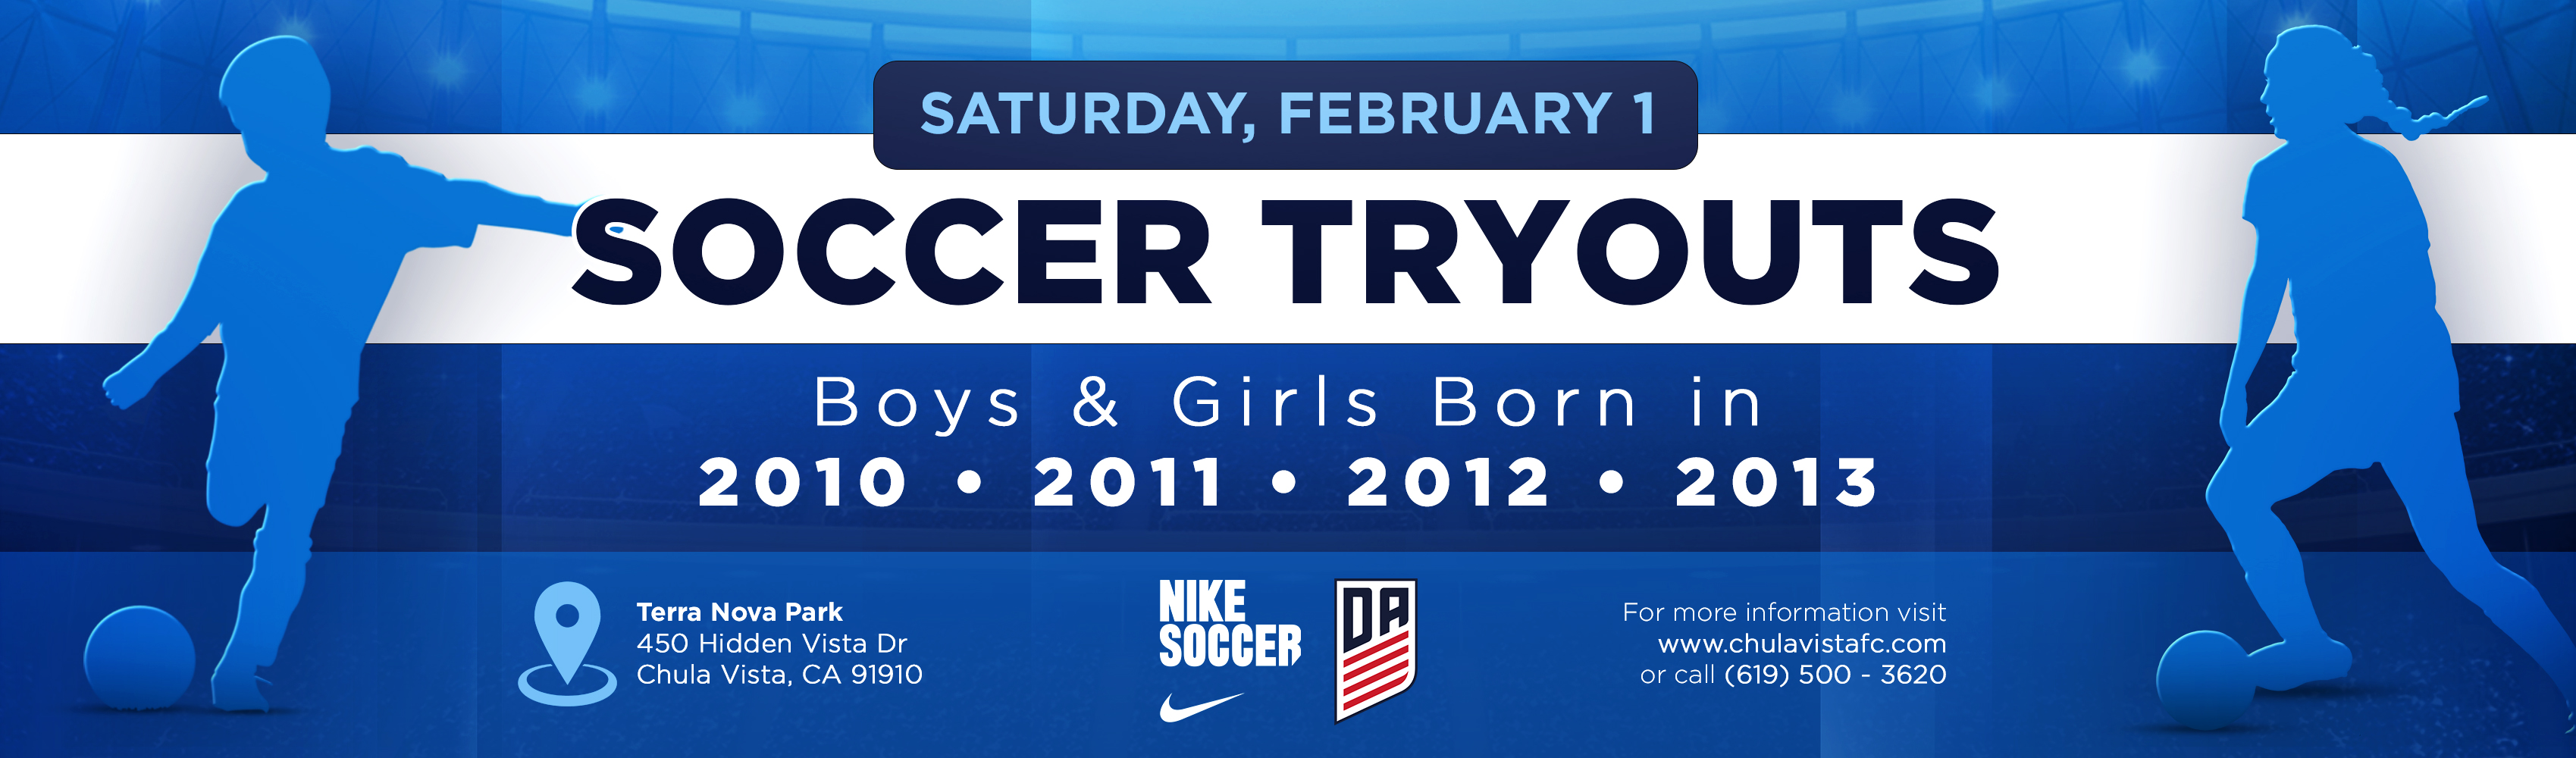 Younger Soccer Tryouts